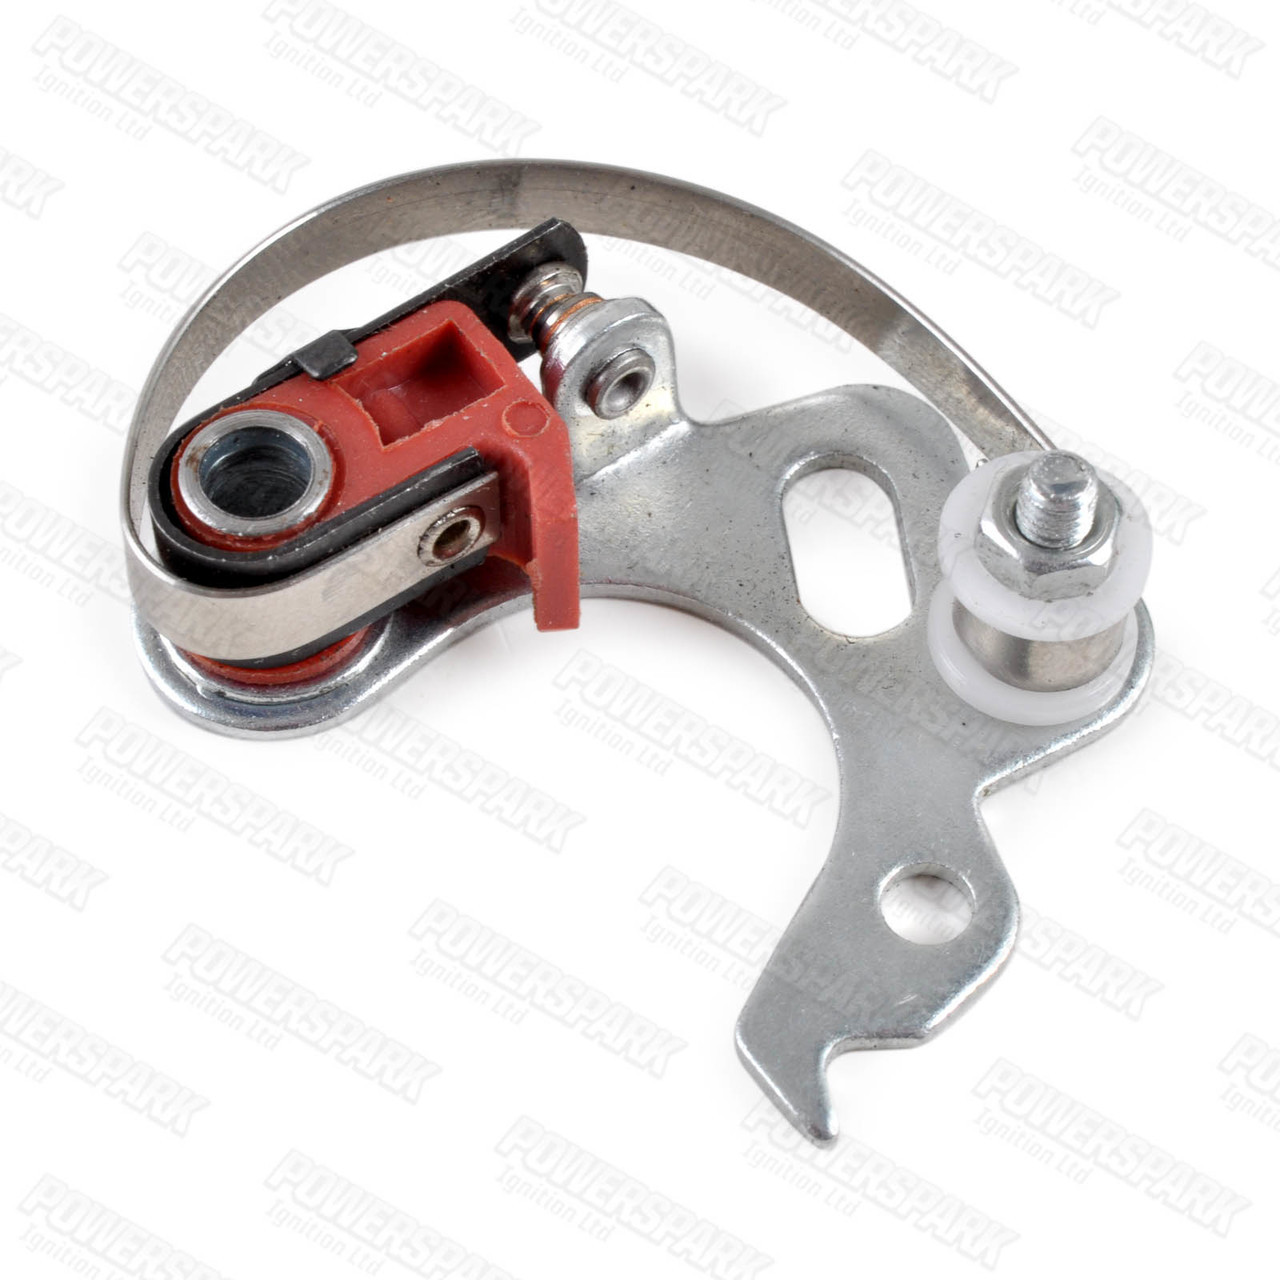 Lucas 25D Distributor Points only (PO3P)